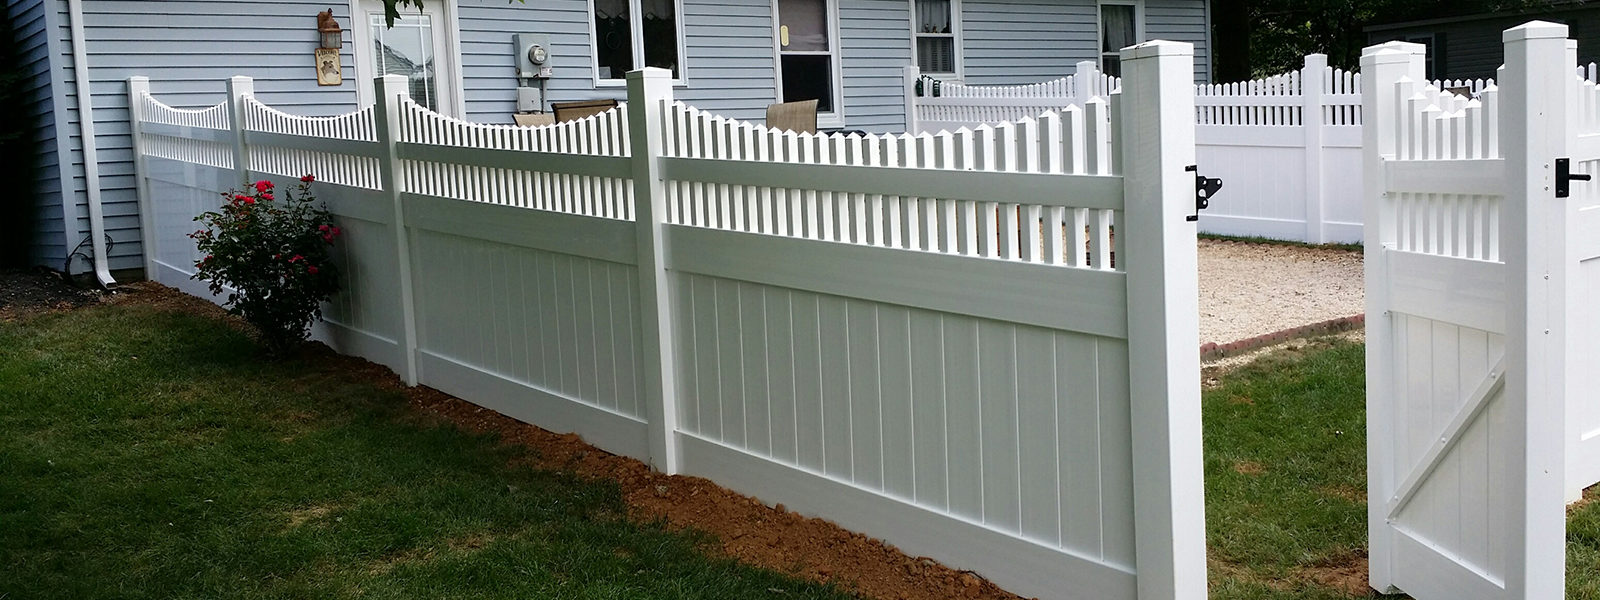 Tips on Choosing Good Vinyl Fencing